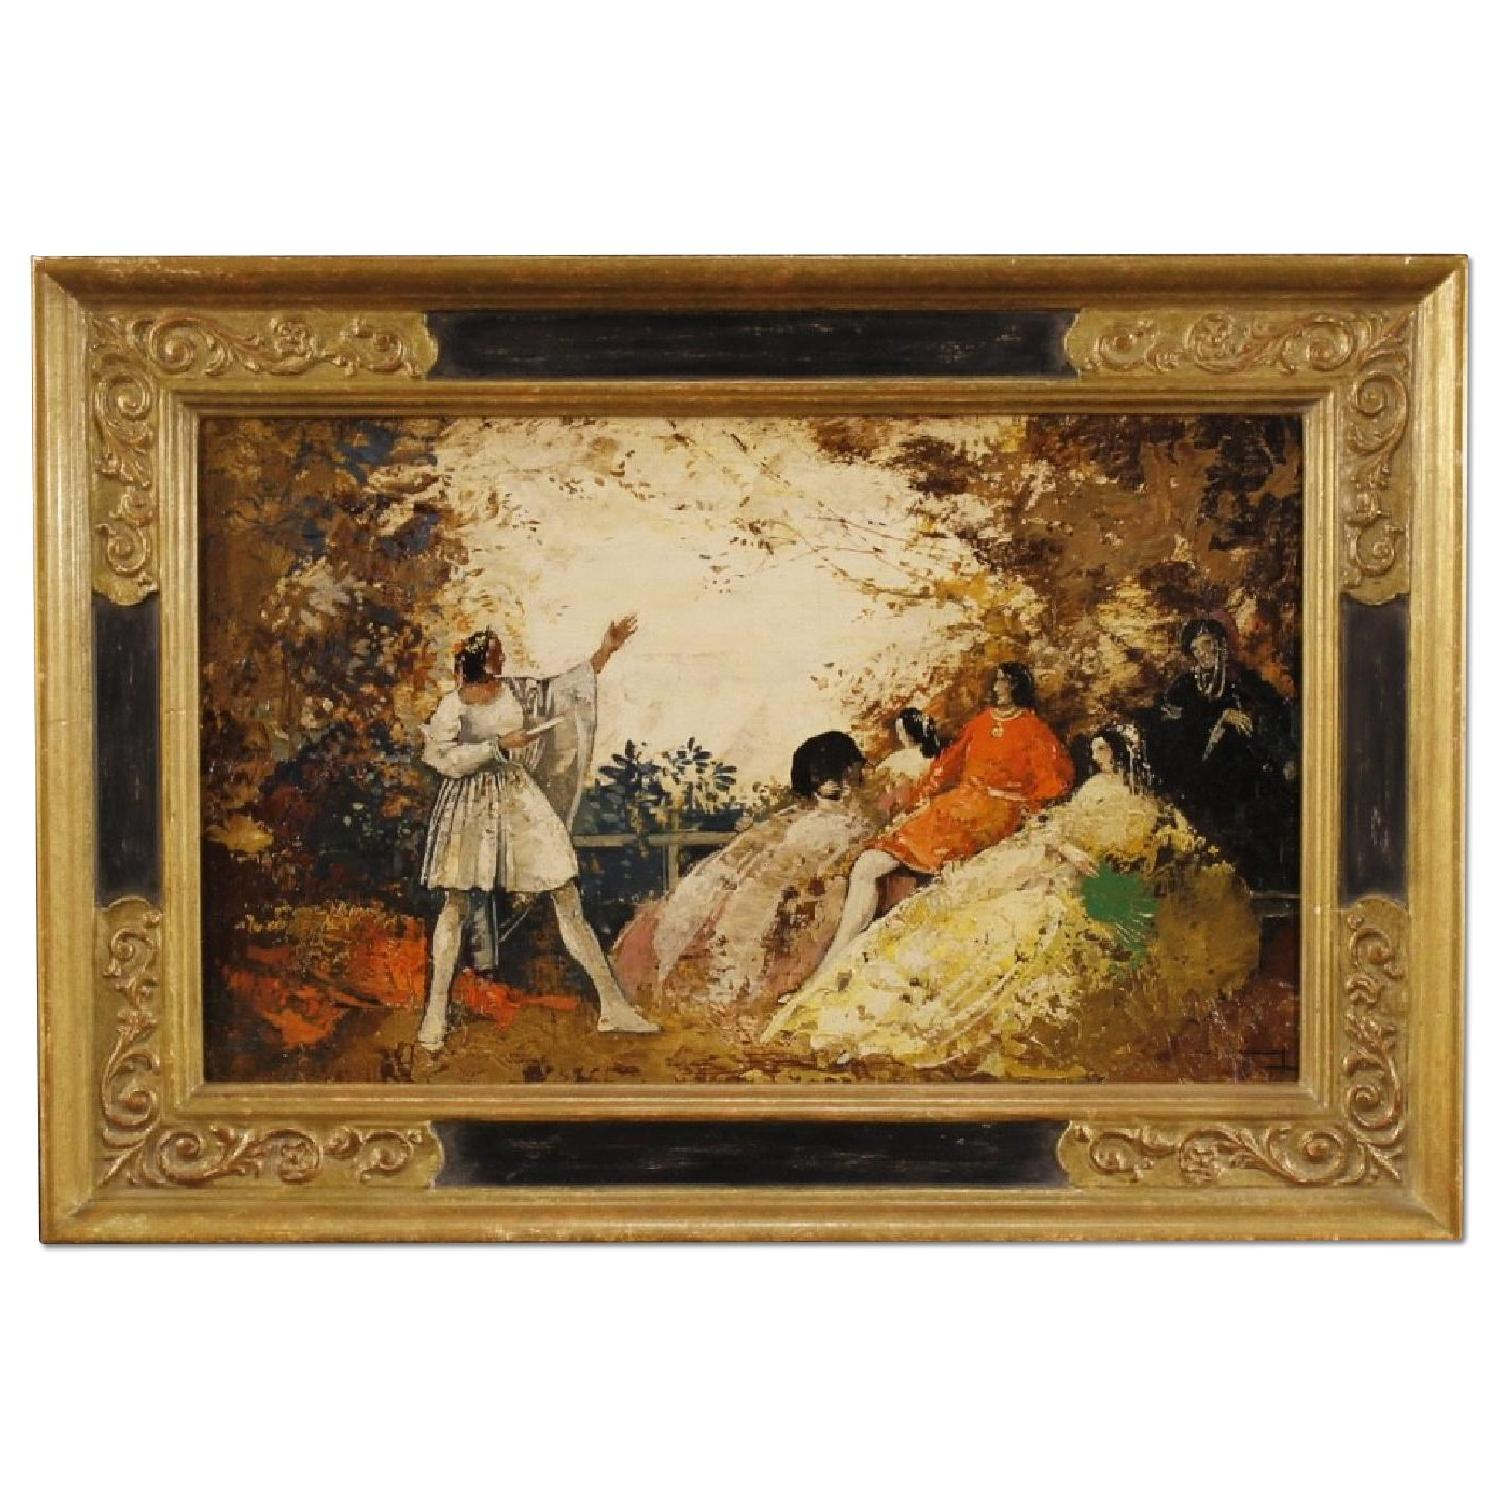 French Signed Romantic Landscape Painting w/ Characters